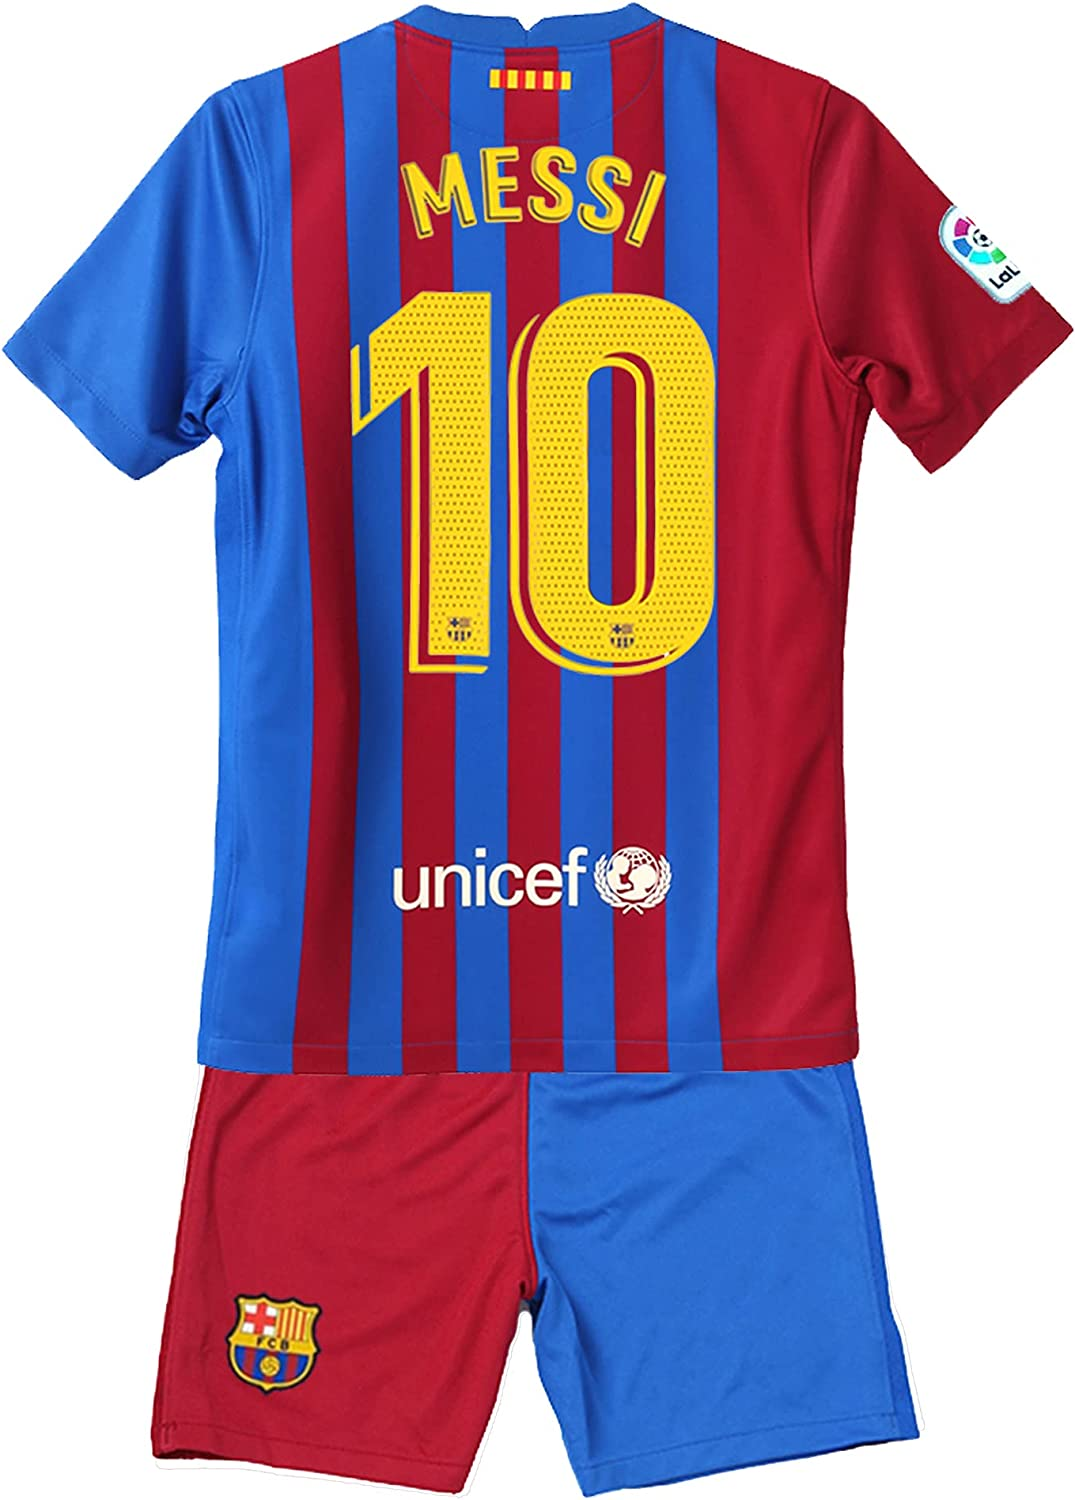 FILDOTG Messi #10 Kids/Youths 2021/2022 New Season Barcelona Red/Blue Home Soccer Sportswear T-Shirts Jersey